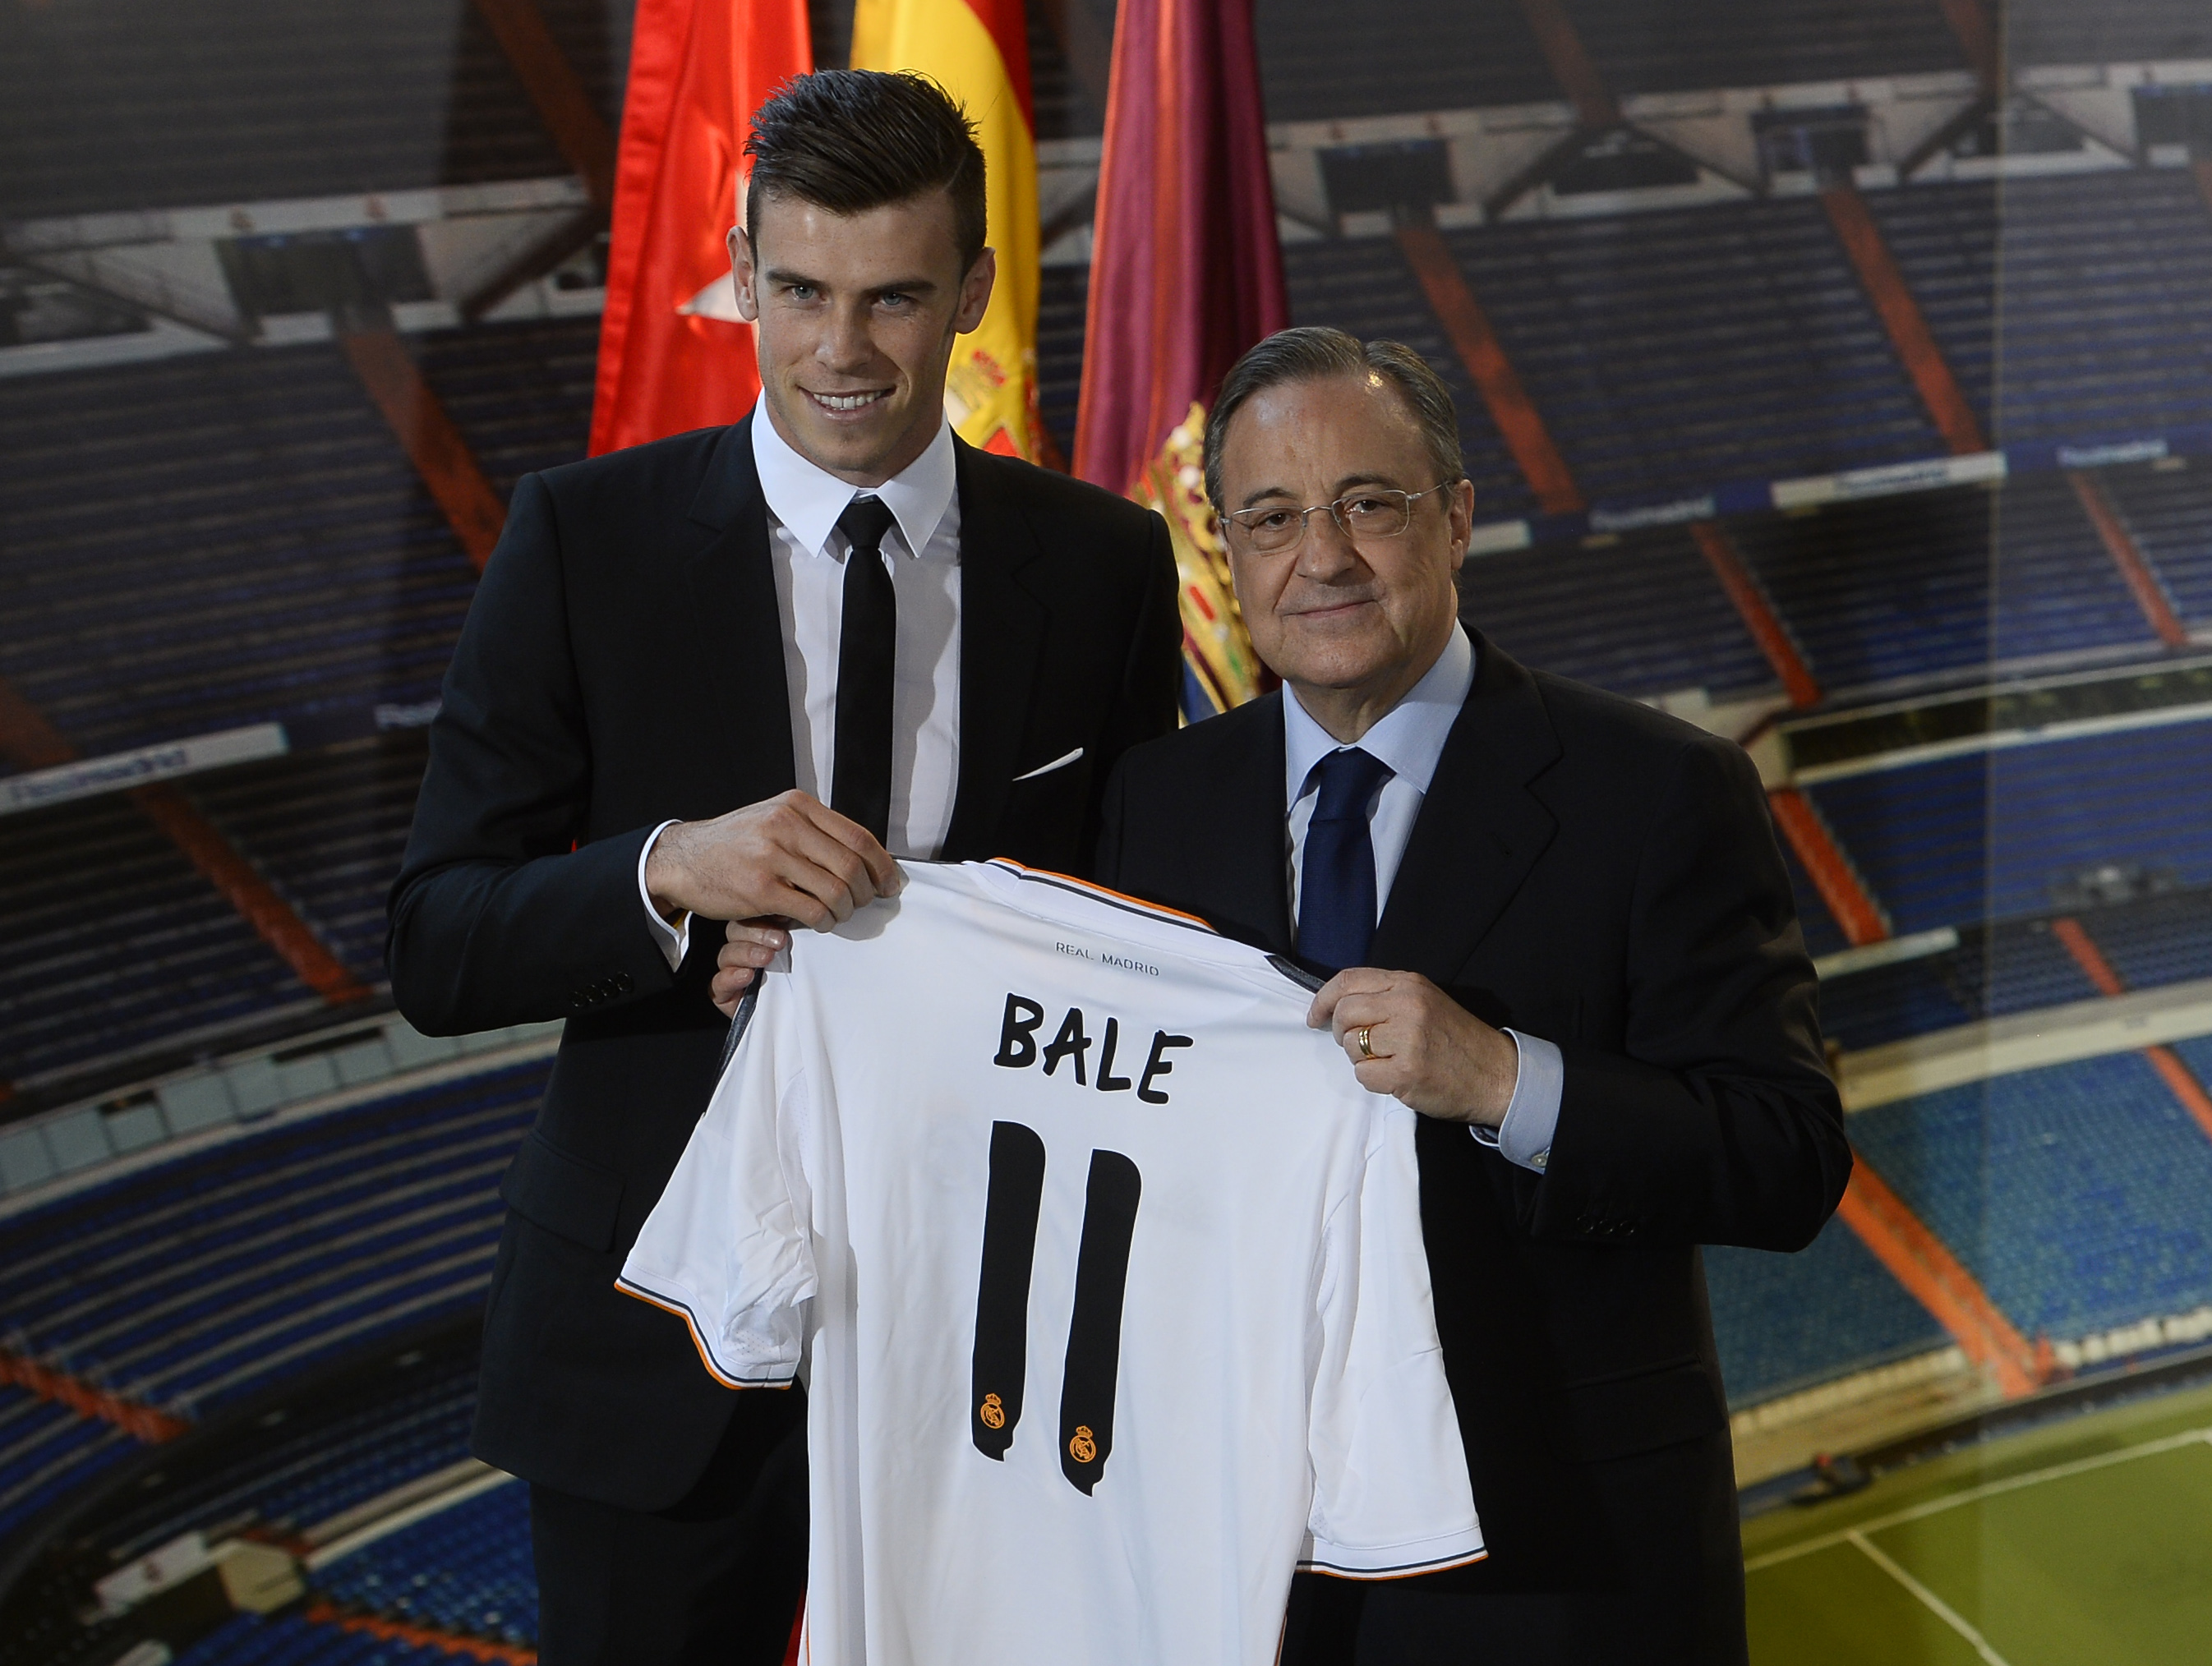 Gareth Bale was not the most expensive player in world, says Florentino Perez